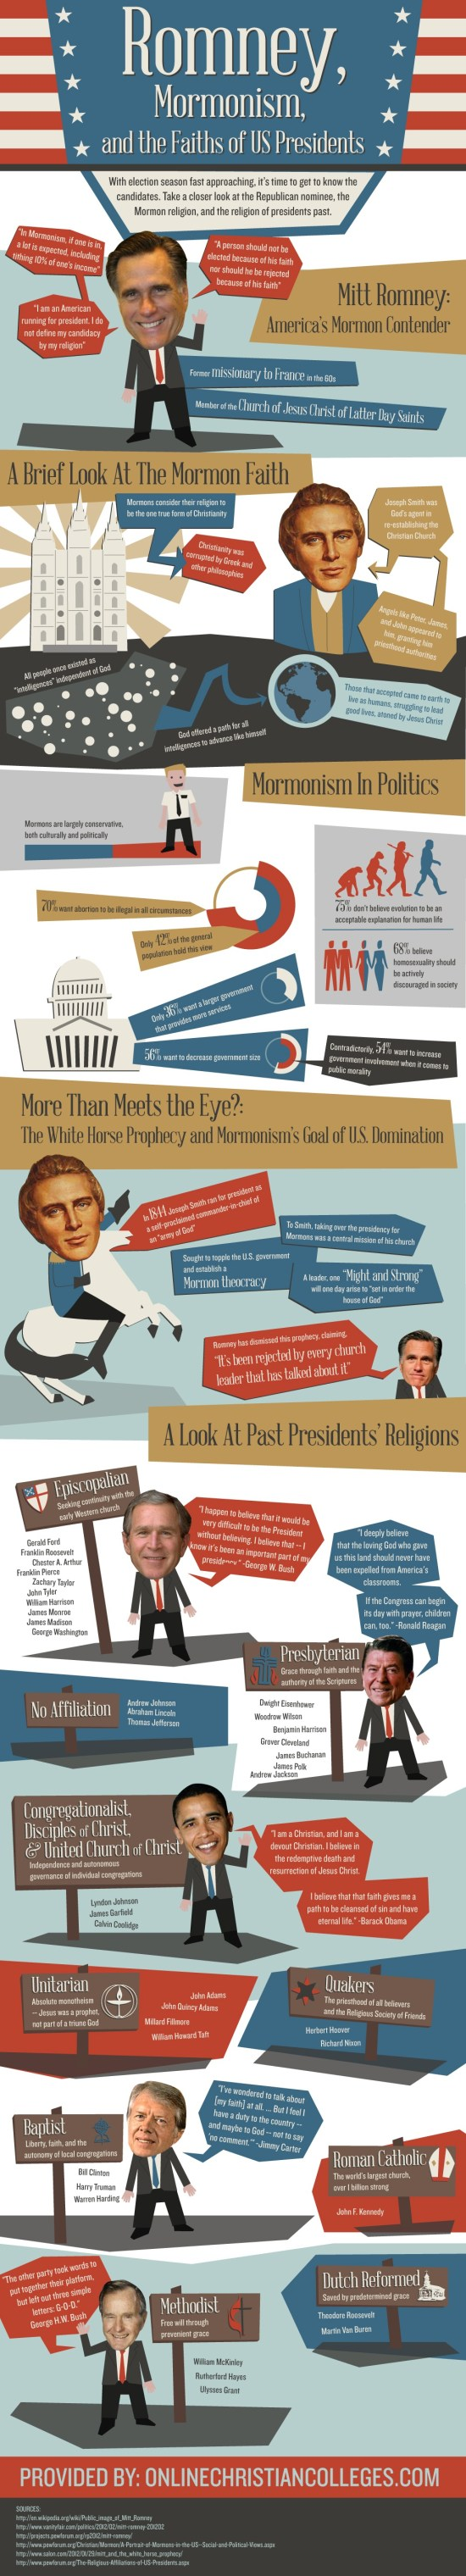 Romney, Mormonism, and the Faiths of U.S. Presidents